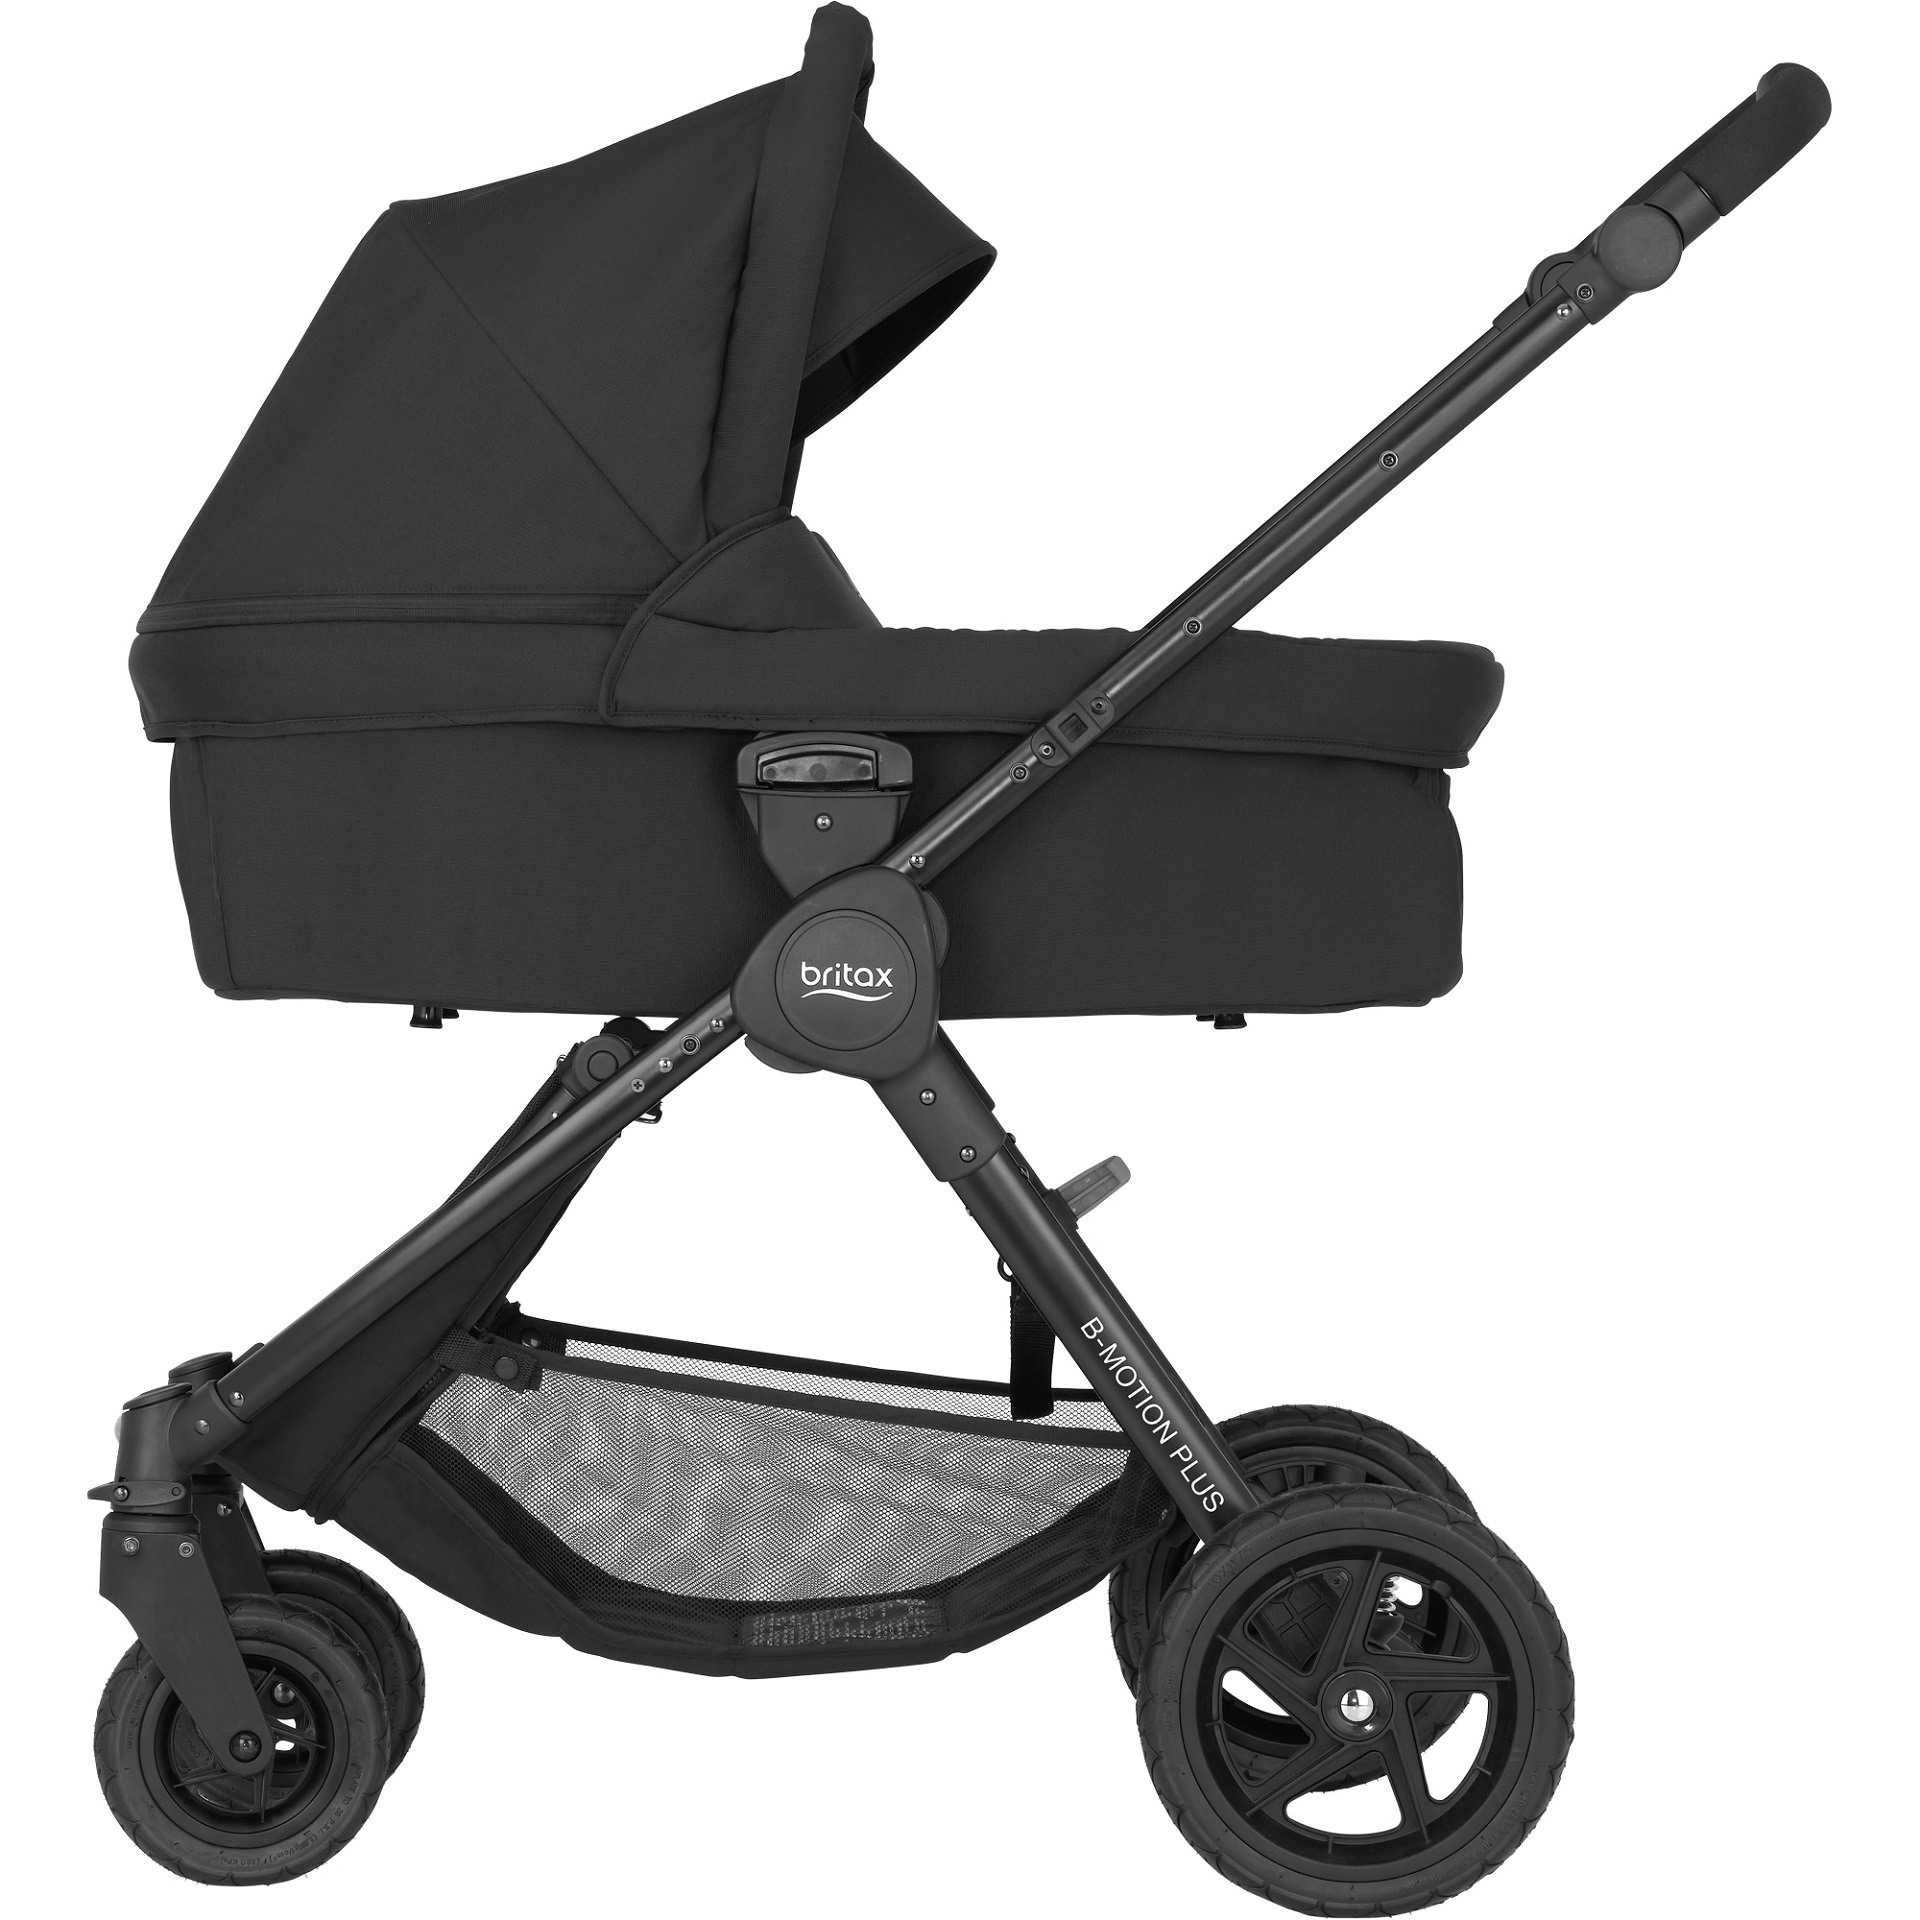 ... Britax B-Motion 4 Plus incl. Canopy Pack + Carrycot Attachment + infant carrier ...  sc 1 st  Baby products online store - worldwide shipping & Britax B-Motion 4 Plus incl. Canopy Pack + Carrycot Attachment + ...